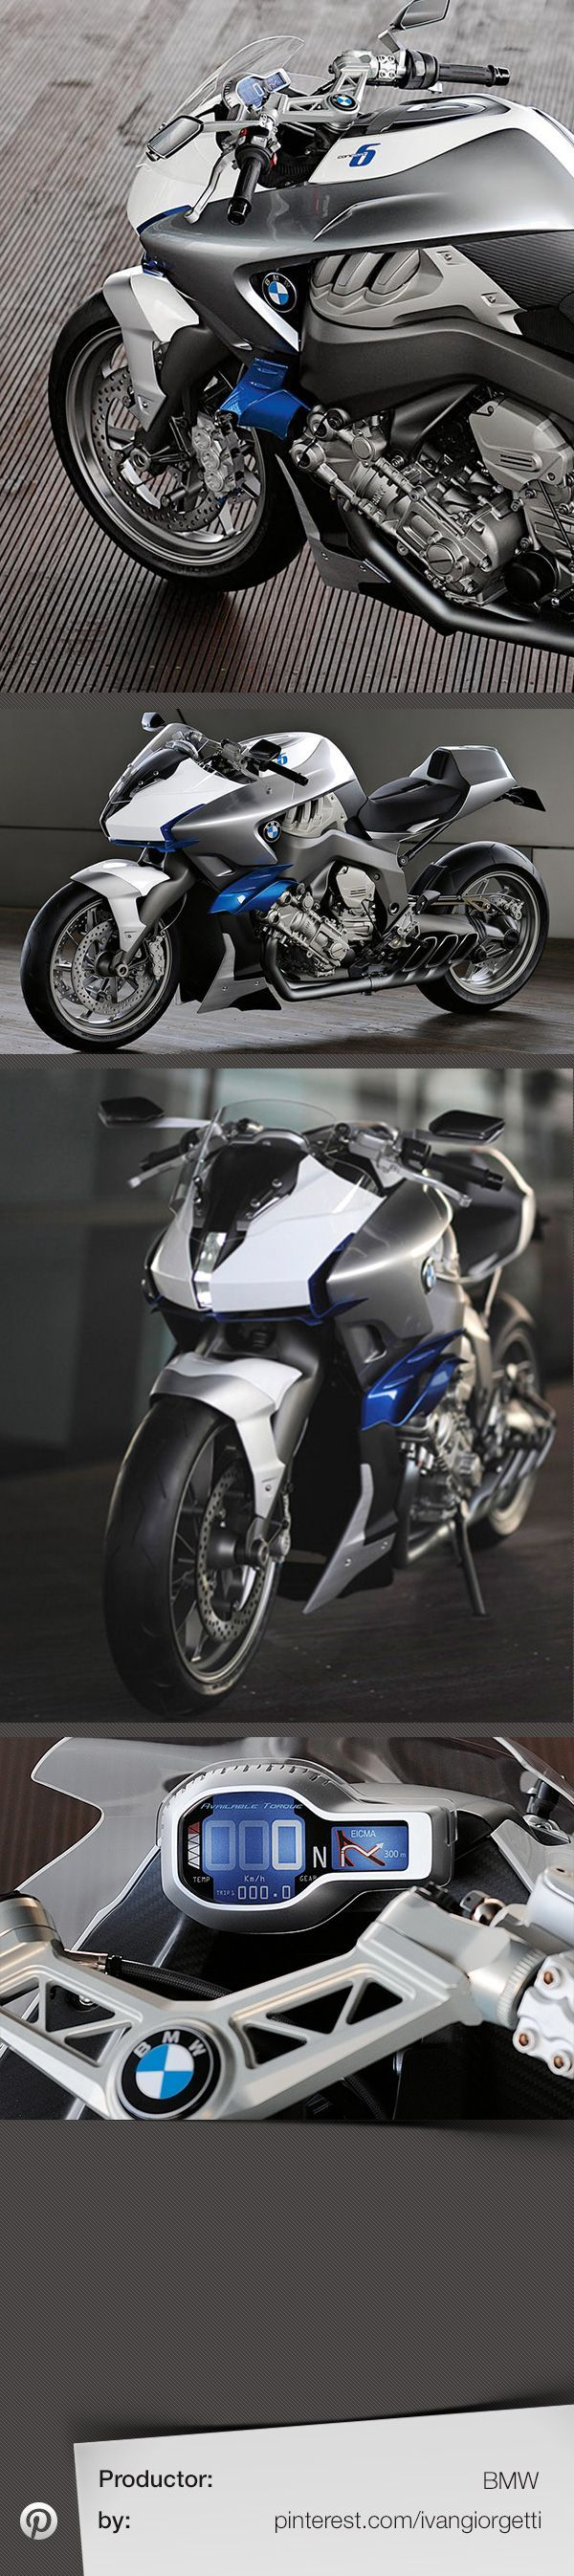 What do You think about BMW Concept 6In here You can Download BMW Concept 6for free, just push the download button and